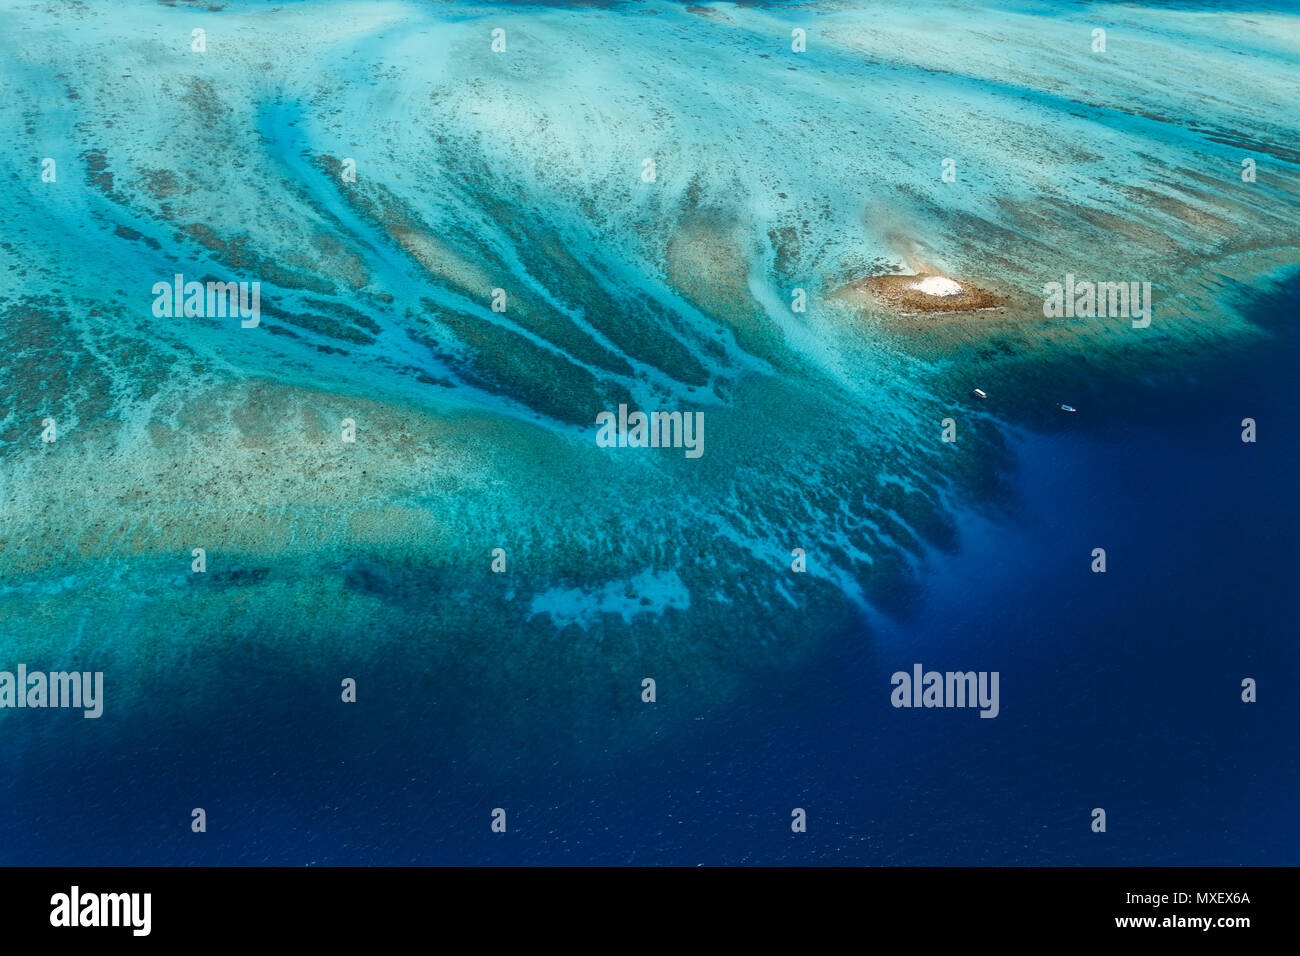 Colorful aerial view of large coral reef surrounding tiny white sandbar island with two boats approaching - Stock Image